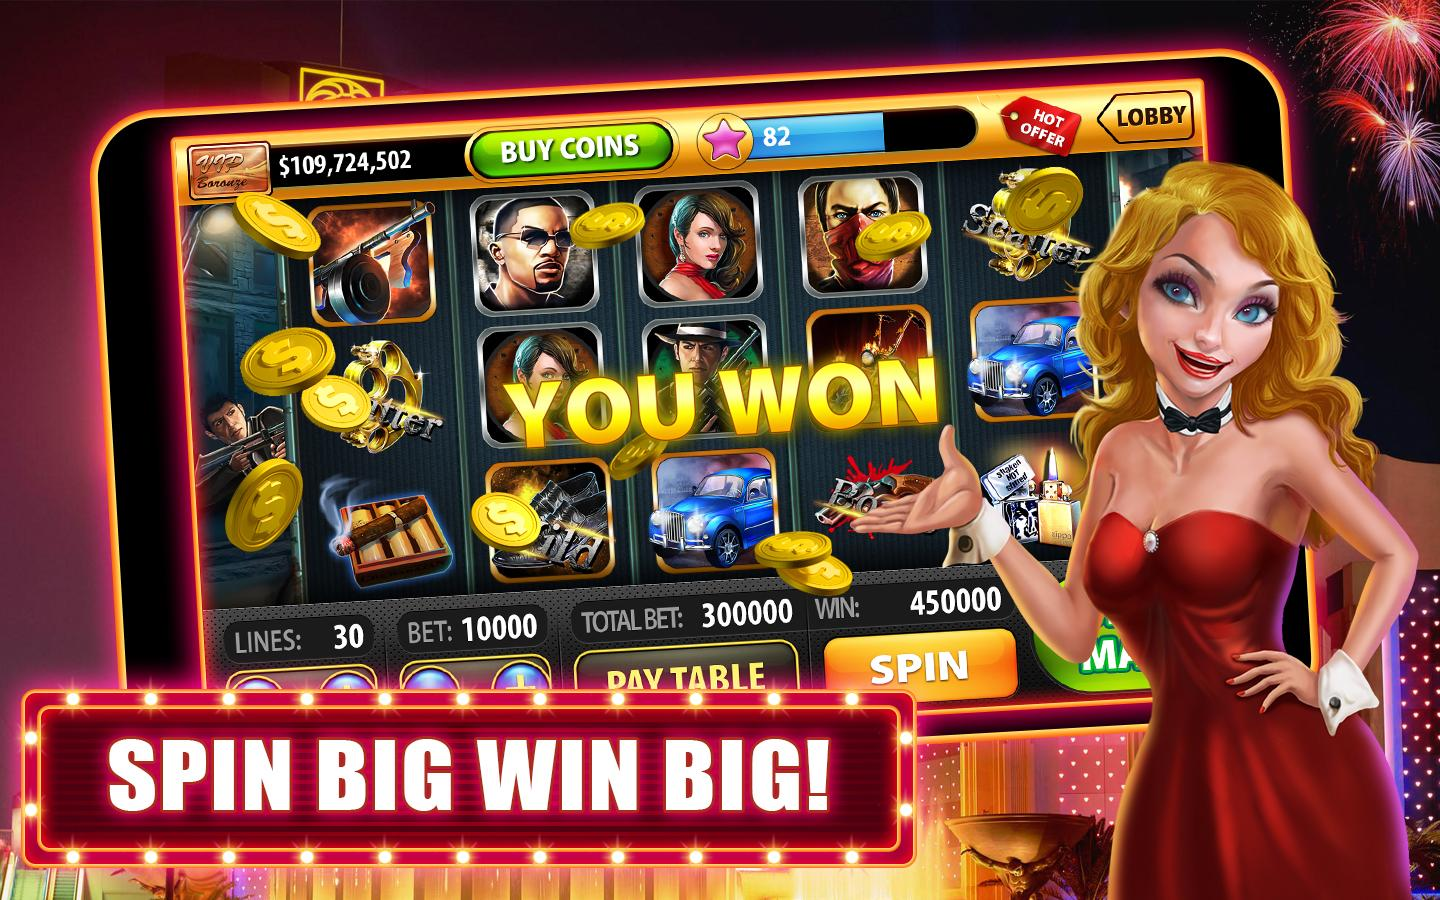 Sub Sea Slots - Win Big Playing Online Casino Games